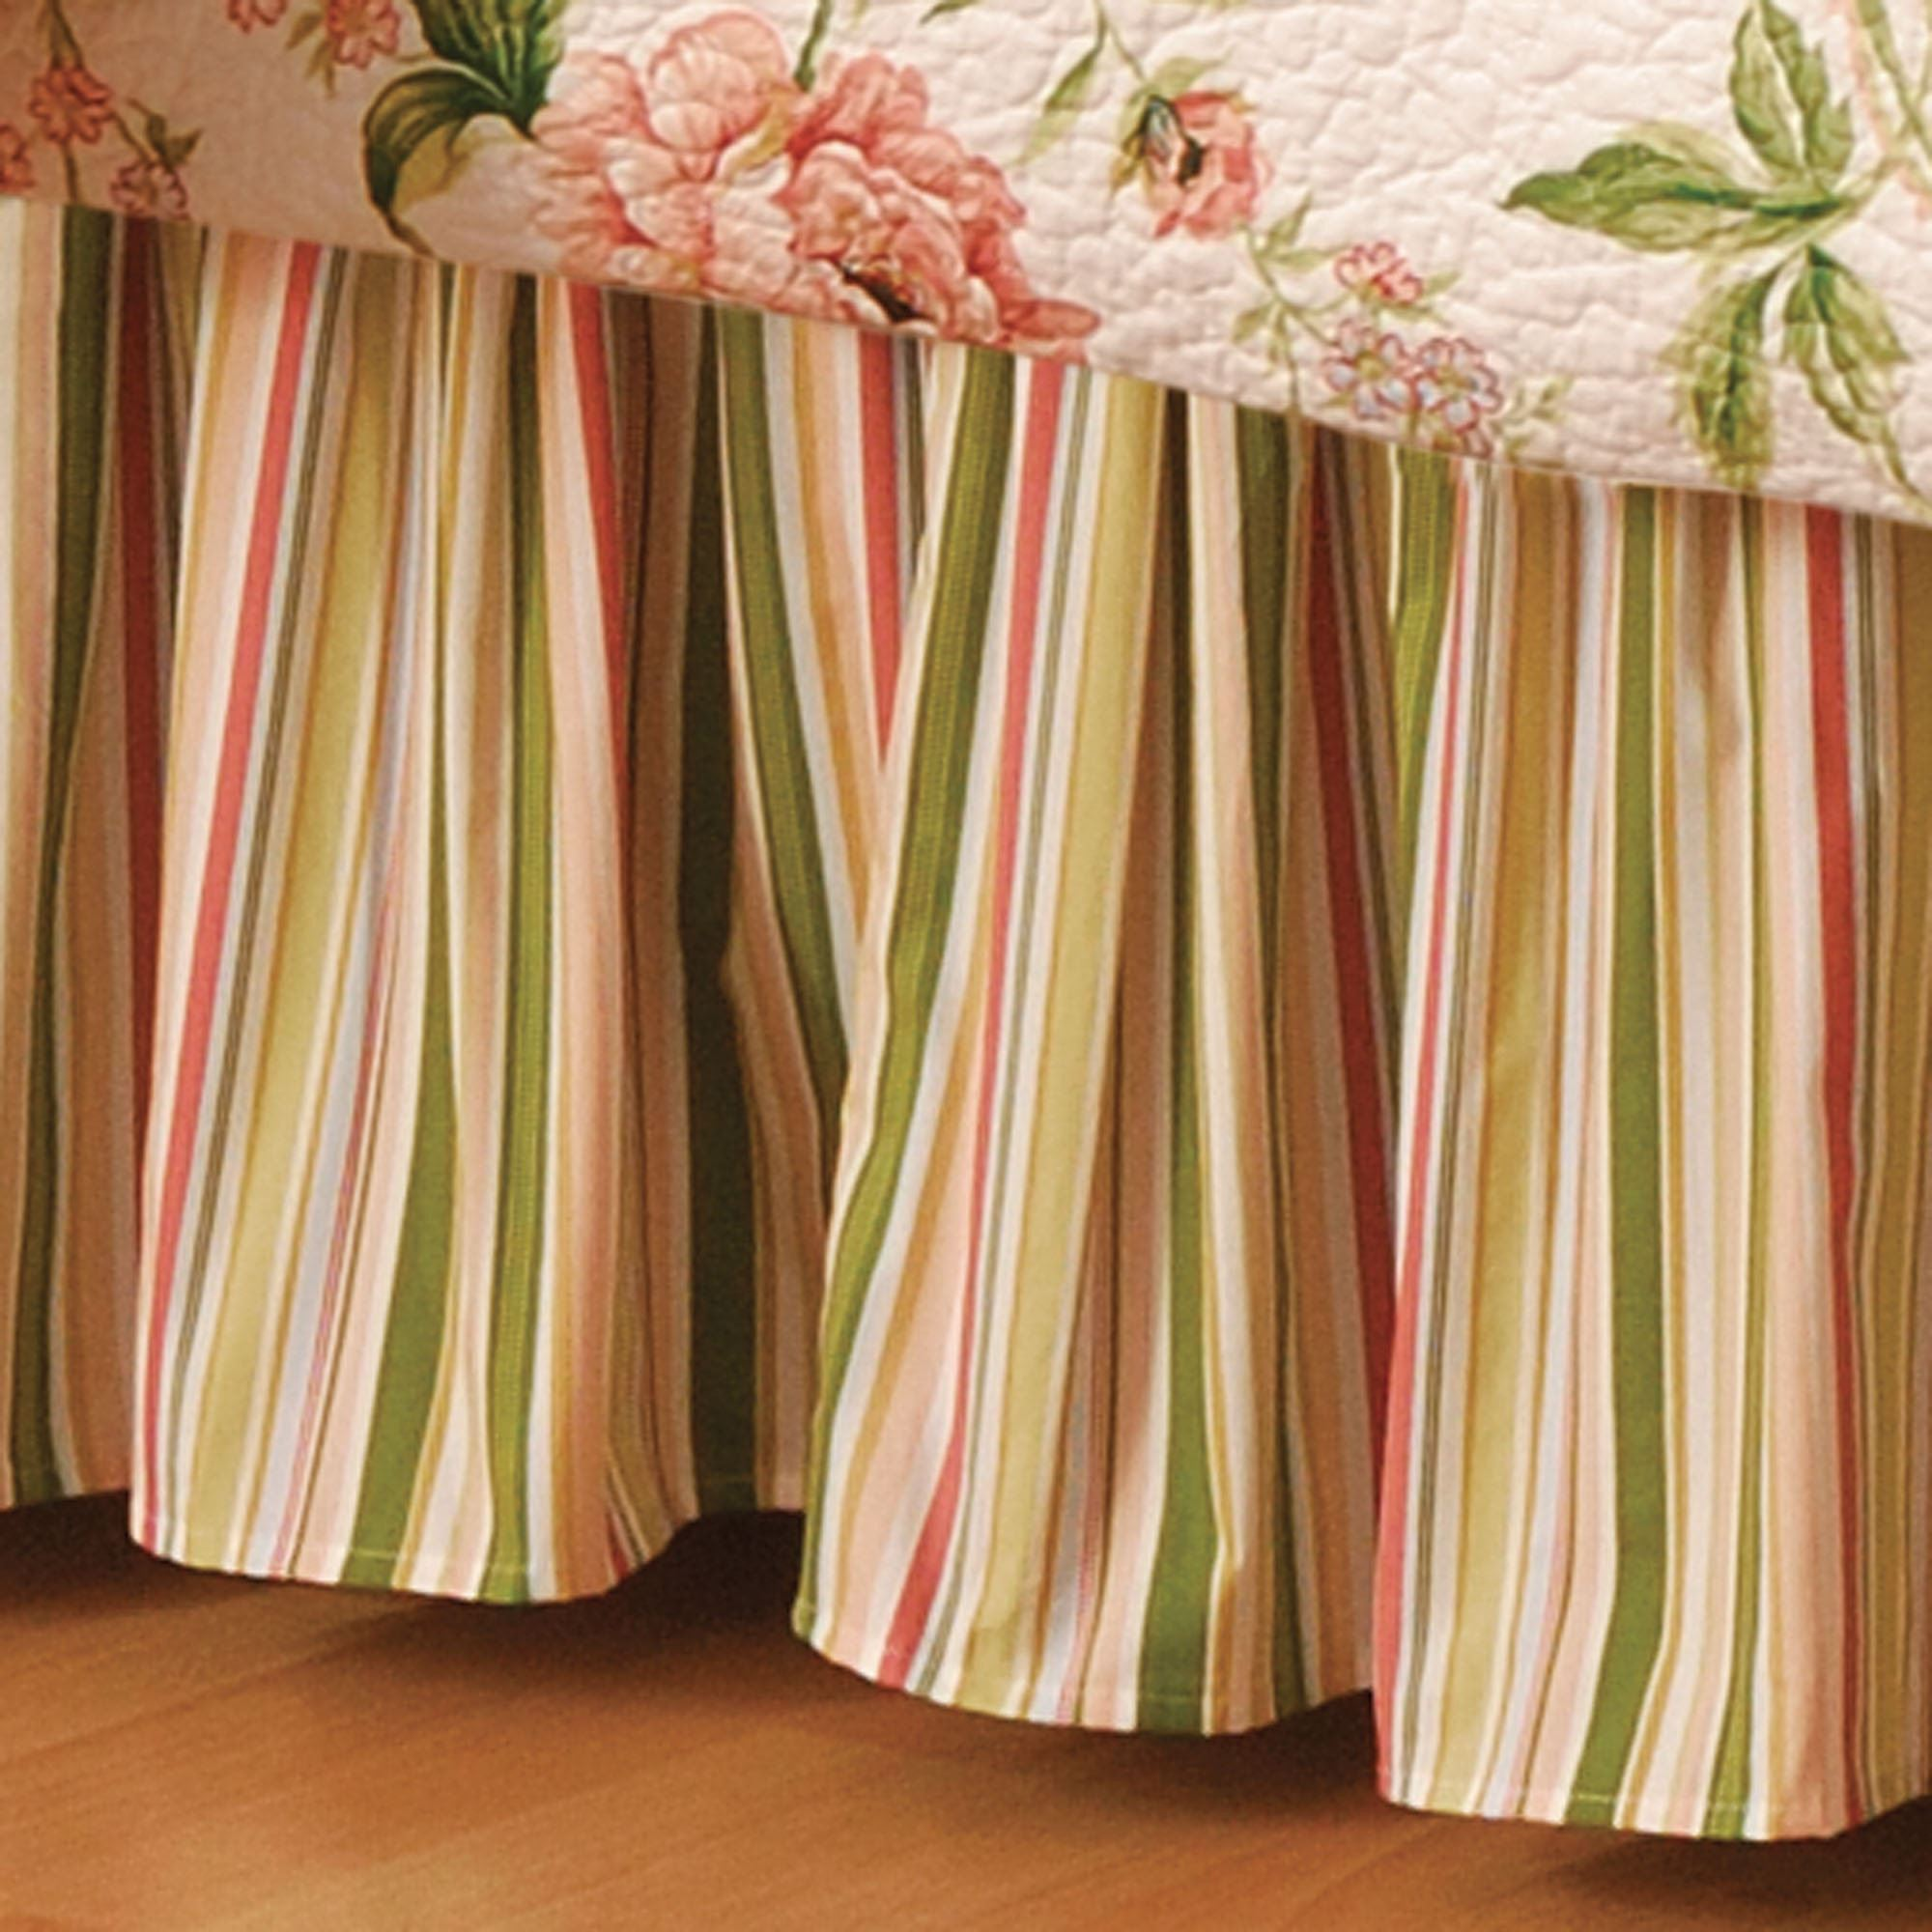 Bed Skirts For Adjule Beds Image Skirt And Slipper Imagepv Co